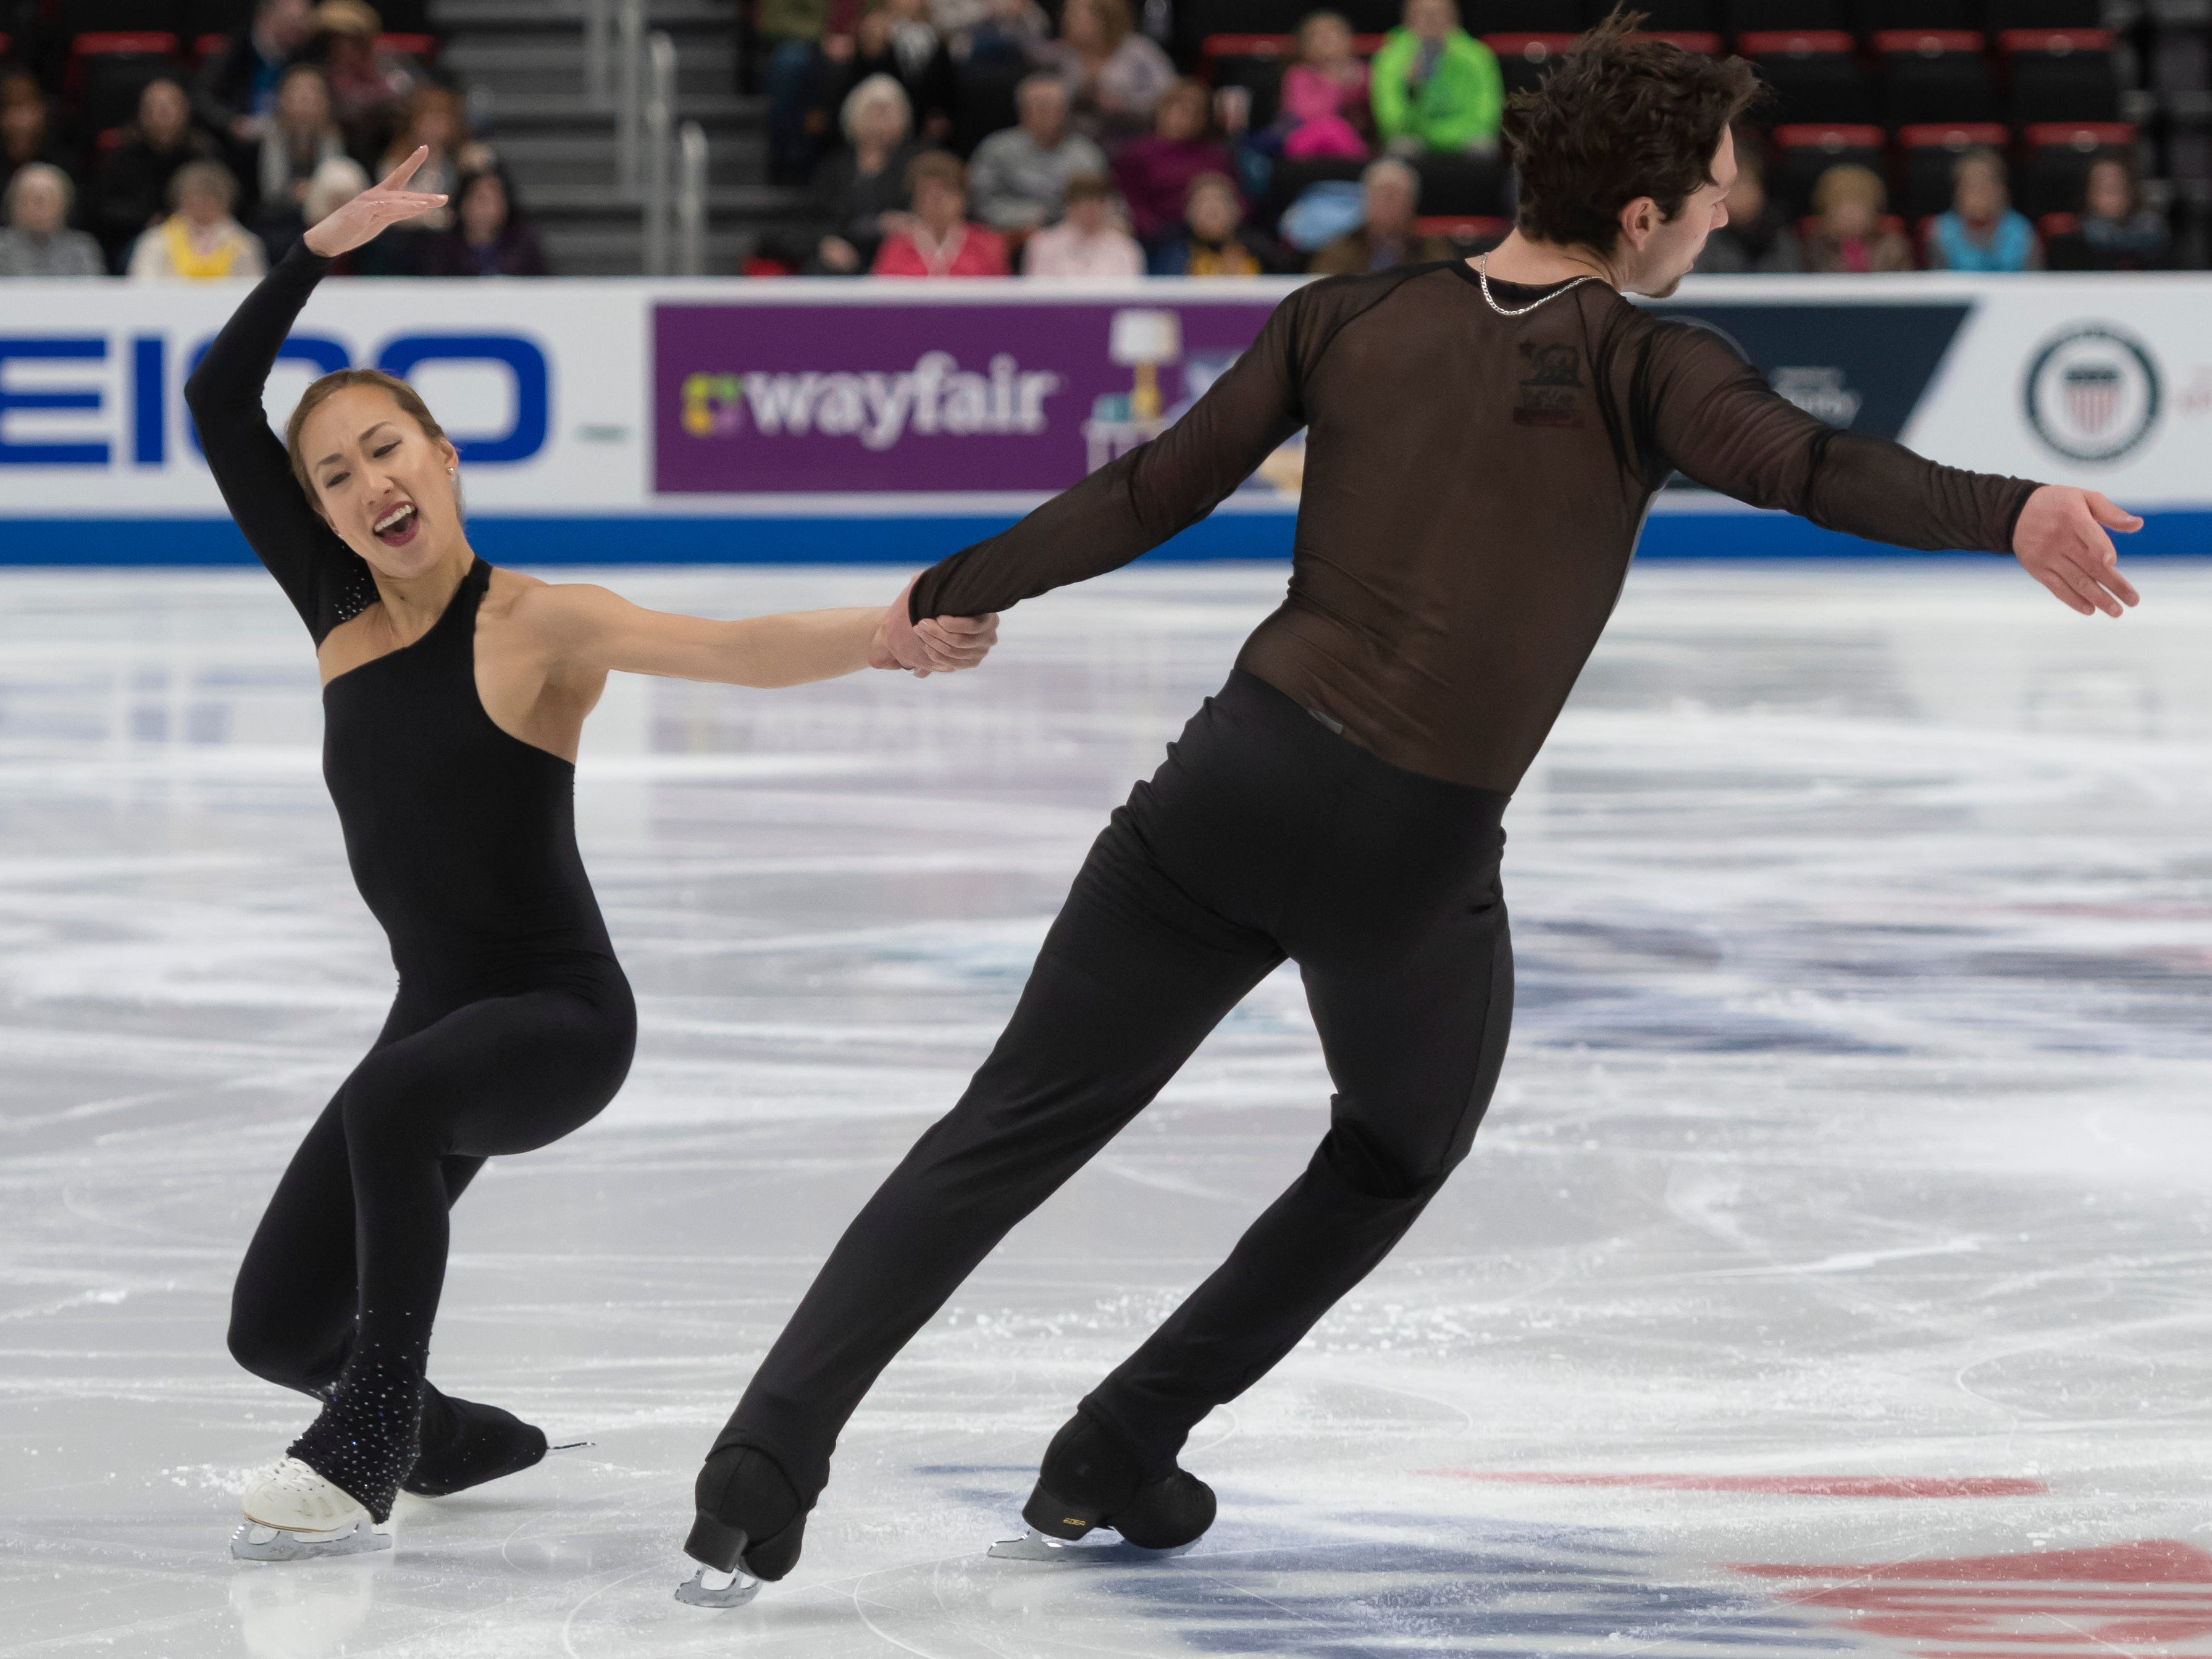 Erika Smith and A.J. Reiss compete in the senior pairs short program at the U.S. Figure Skating Championships.